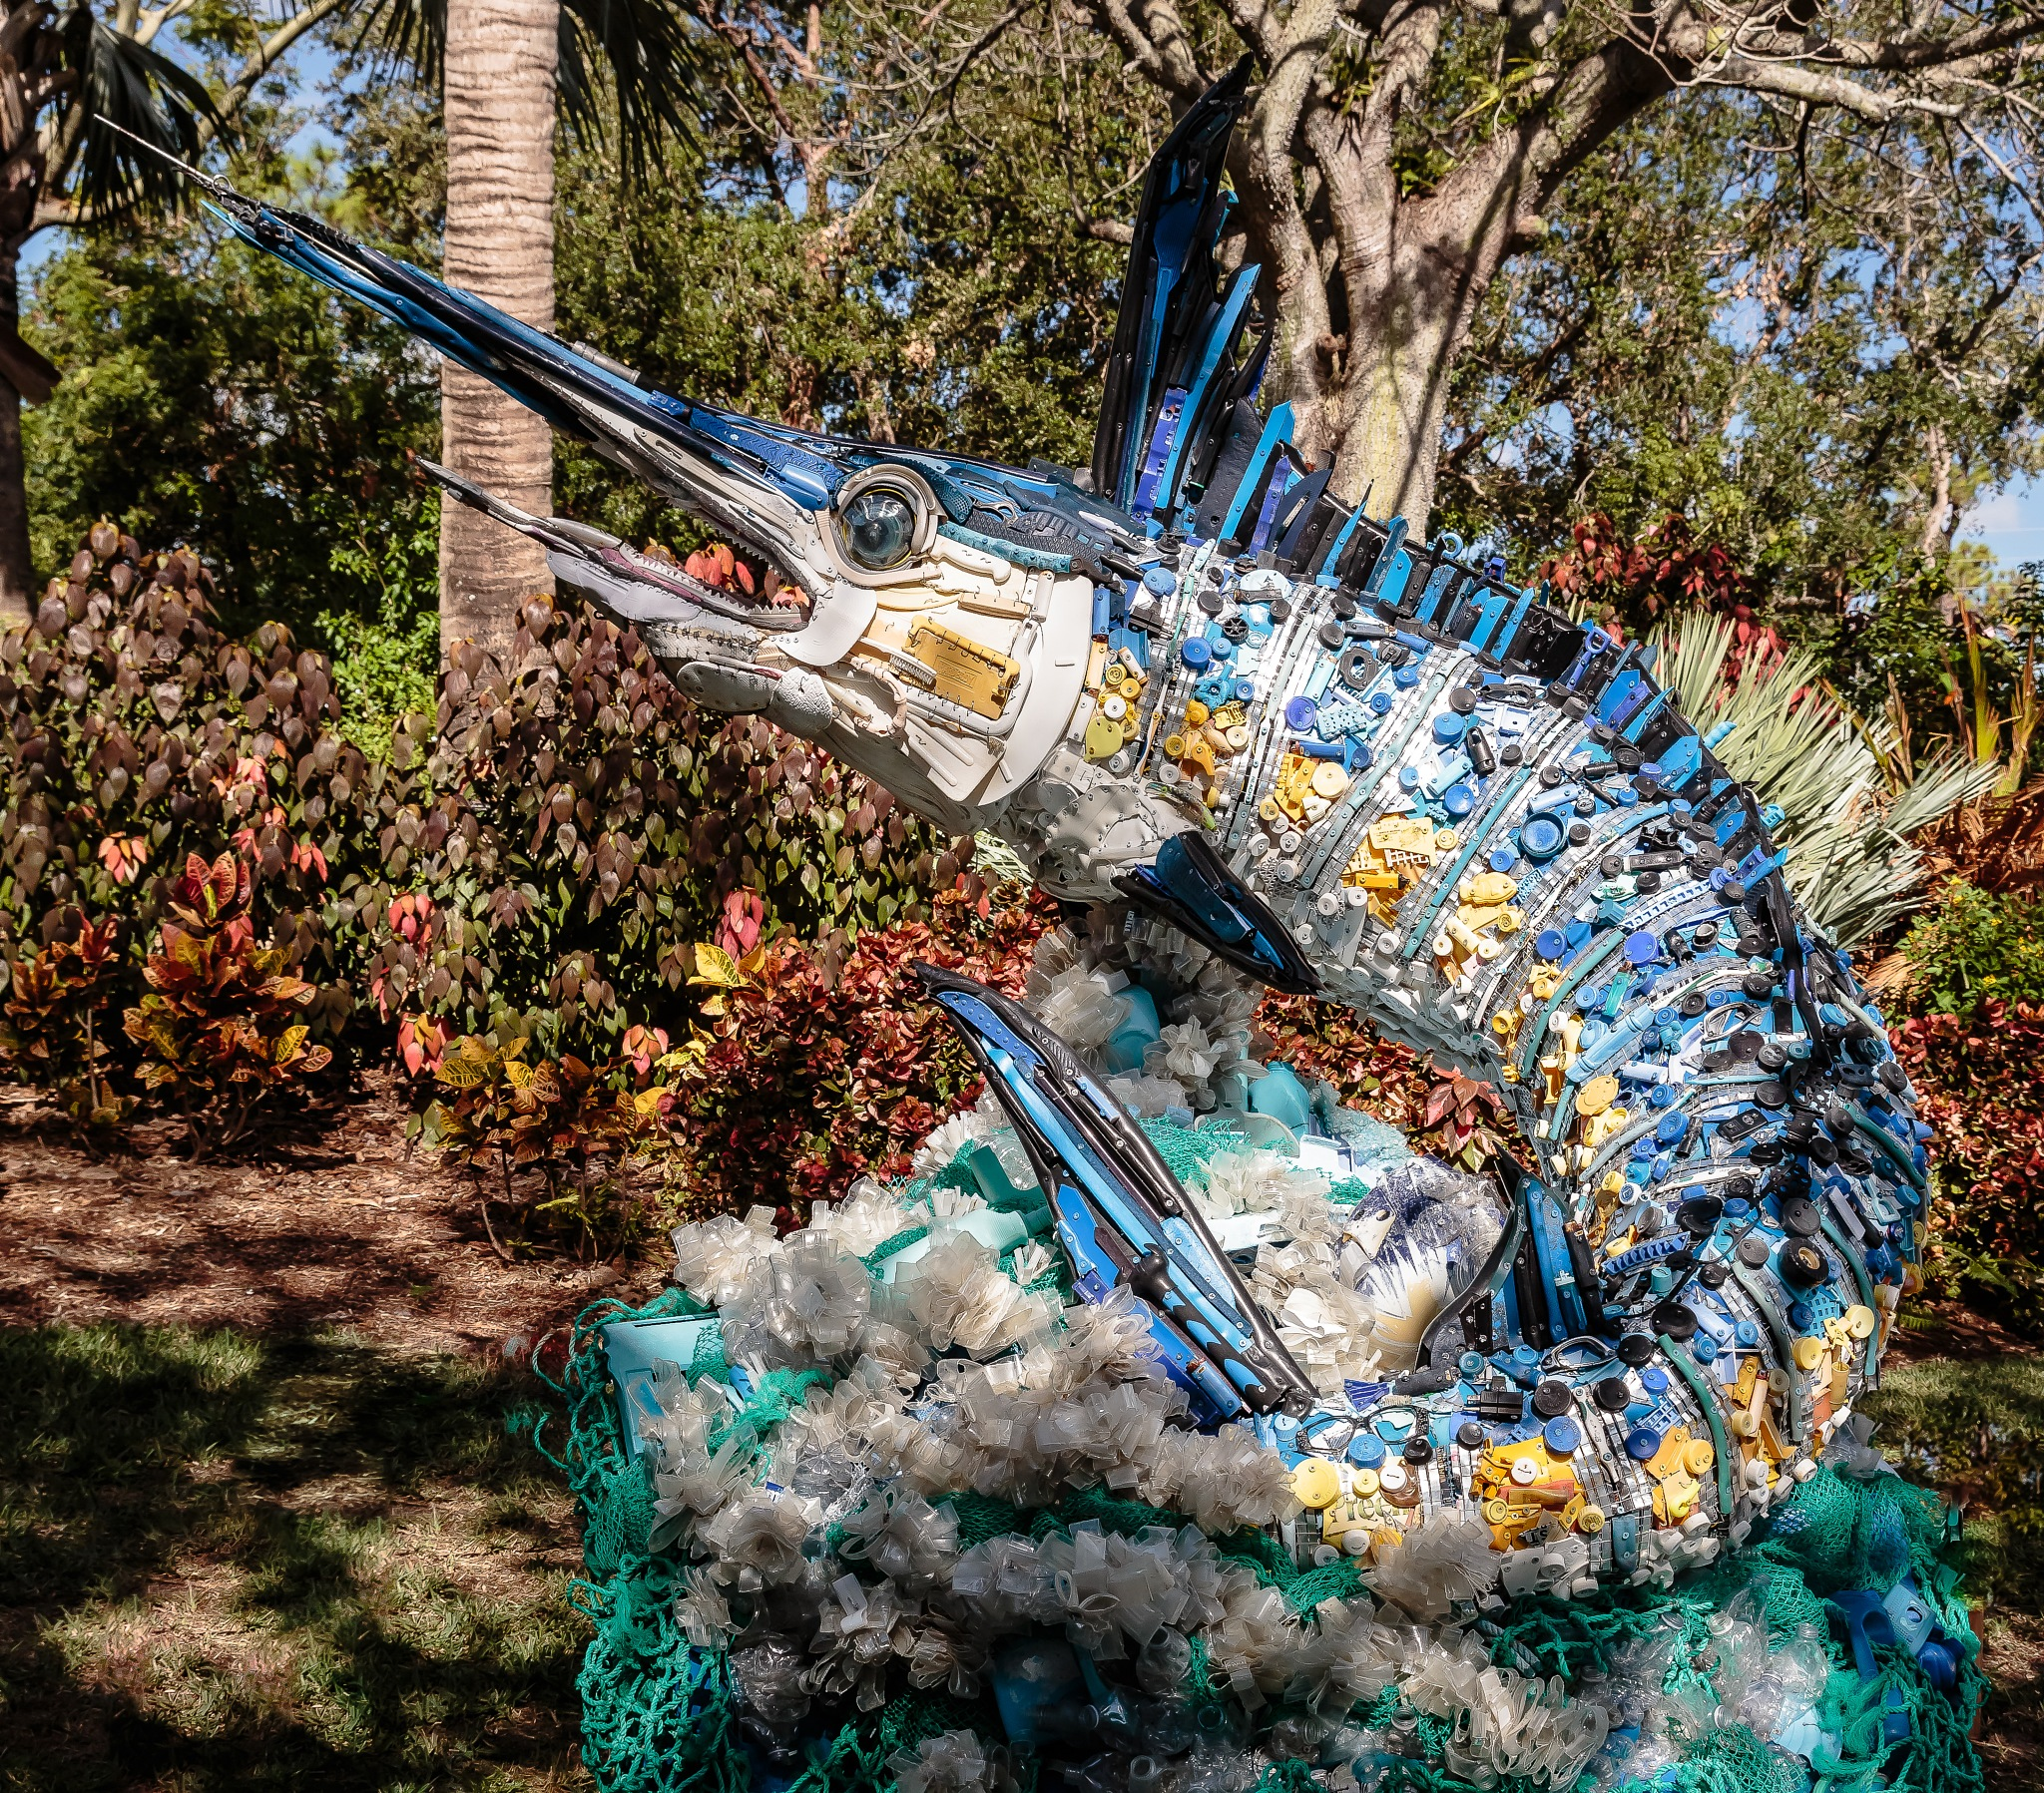 Washed Ashore - Blue Marlin by MaryBethMenden